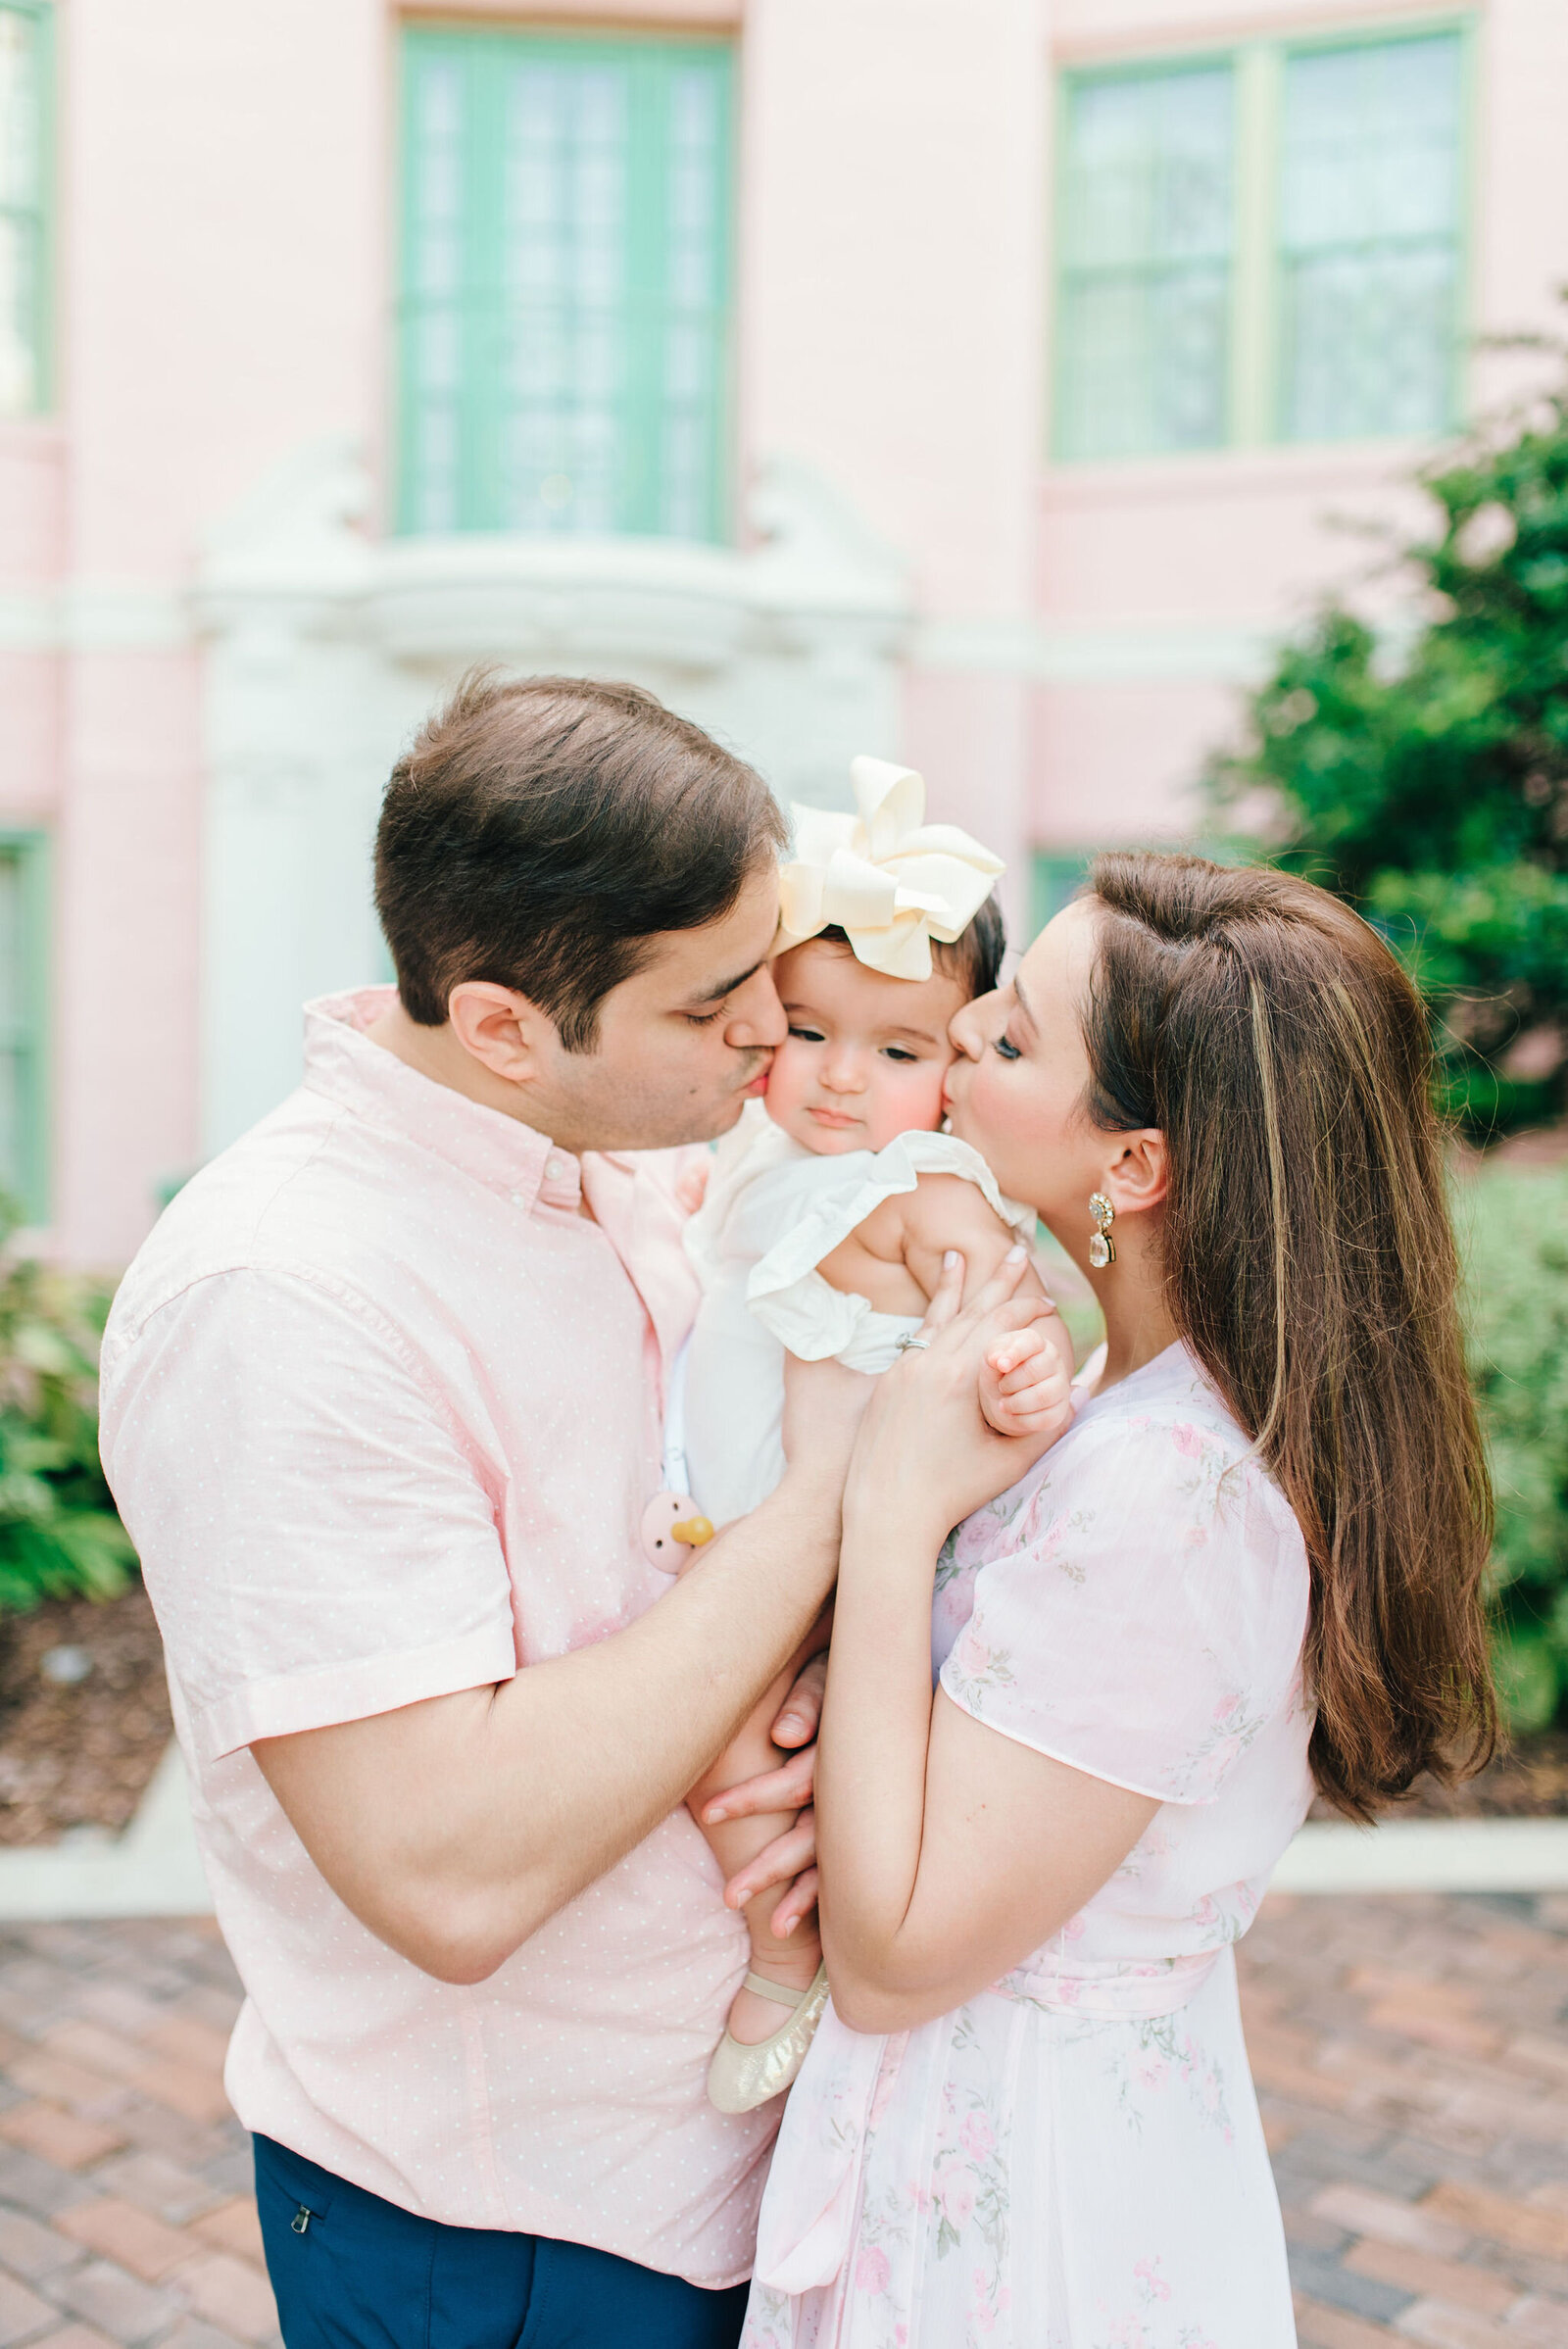 Tampa Family Photographer 17